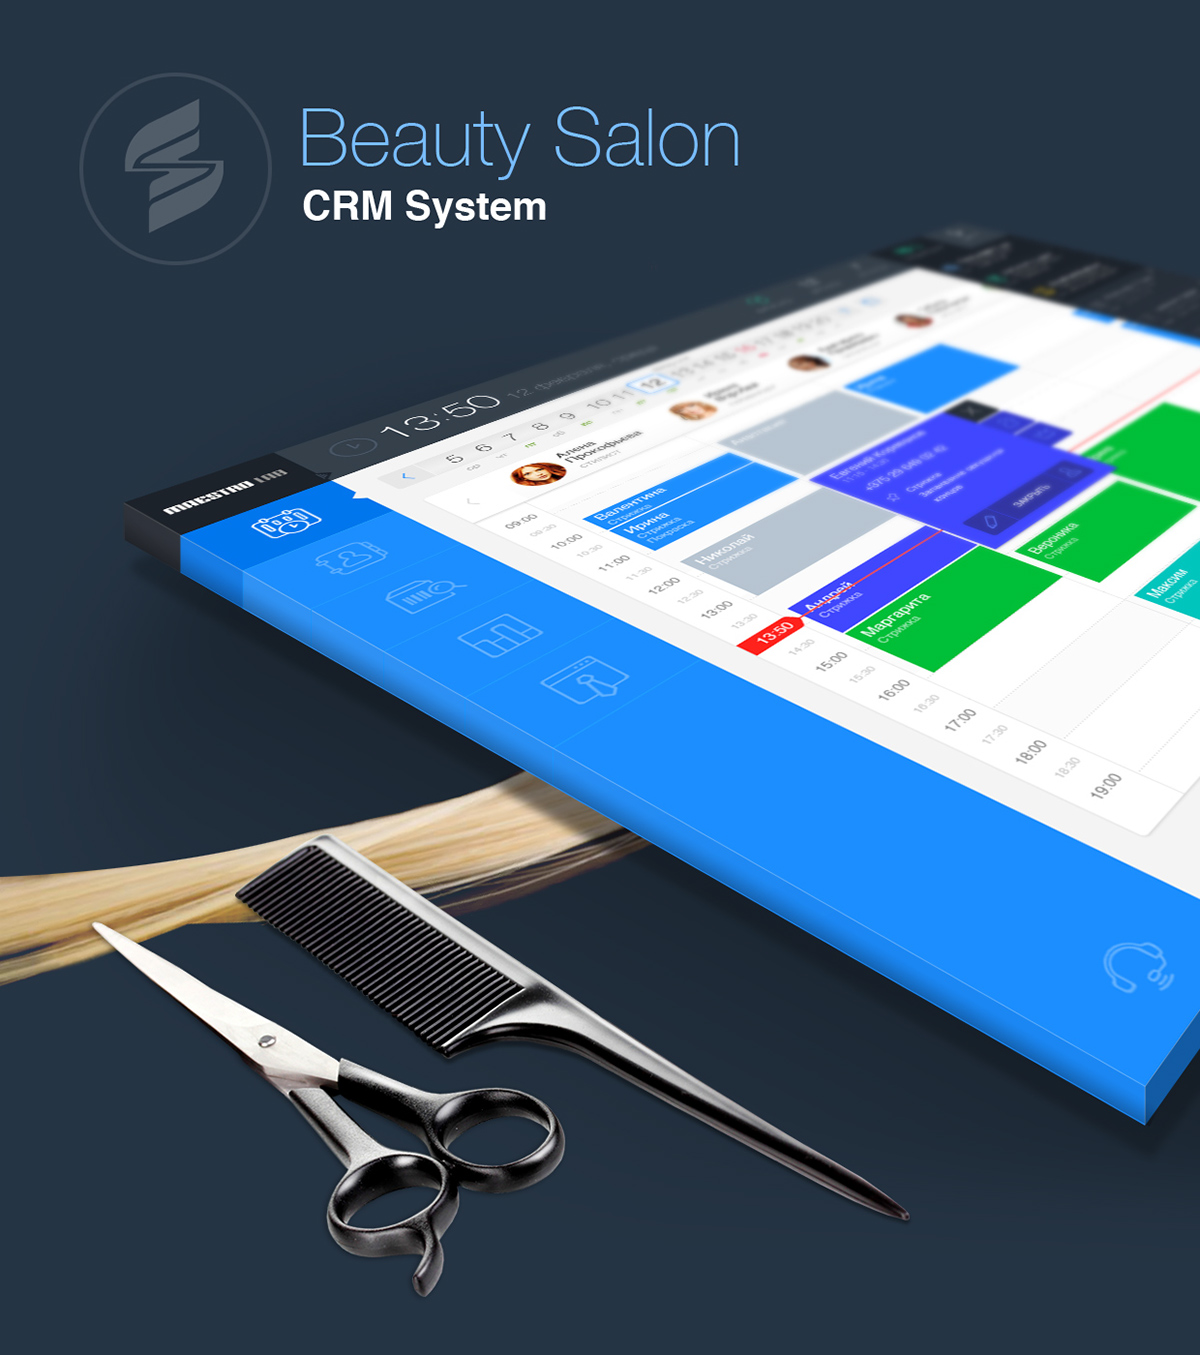 beauty salon crm system on behance